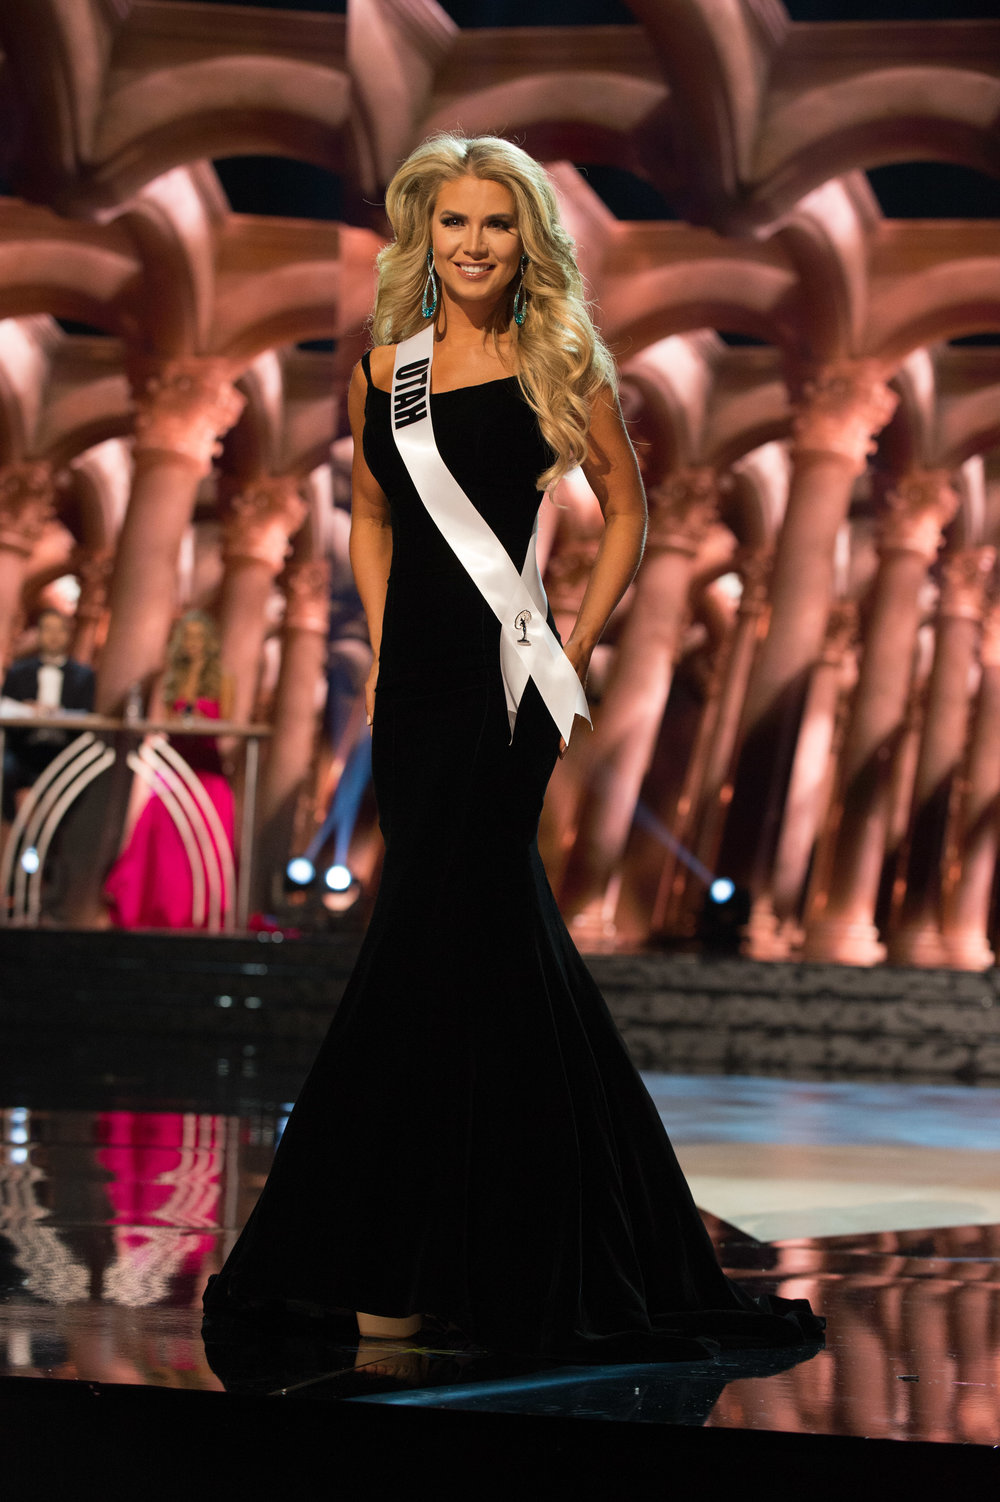 miss-utah-karlie-major.jpg